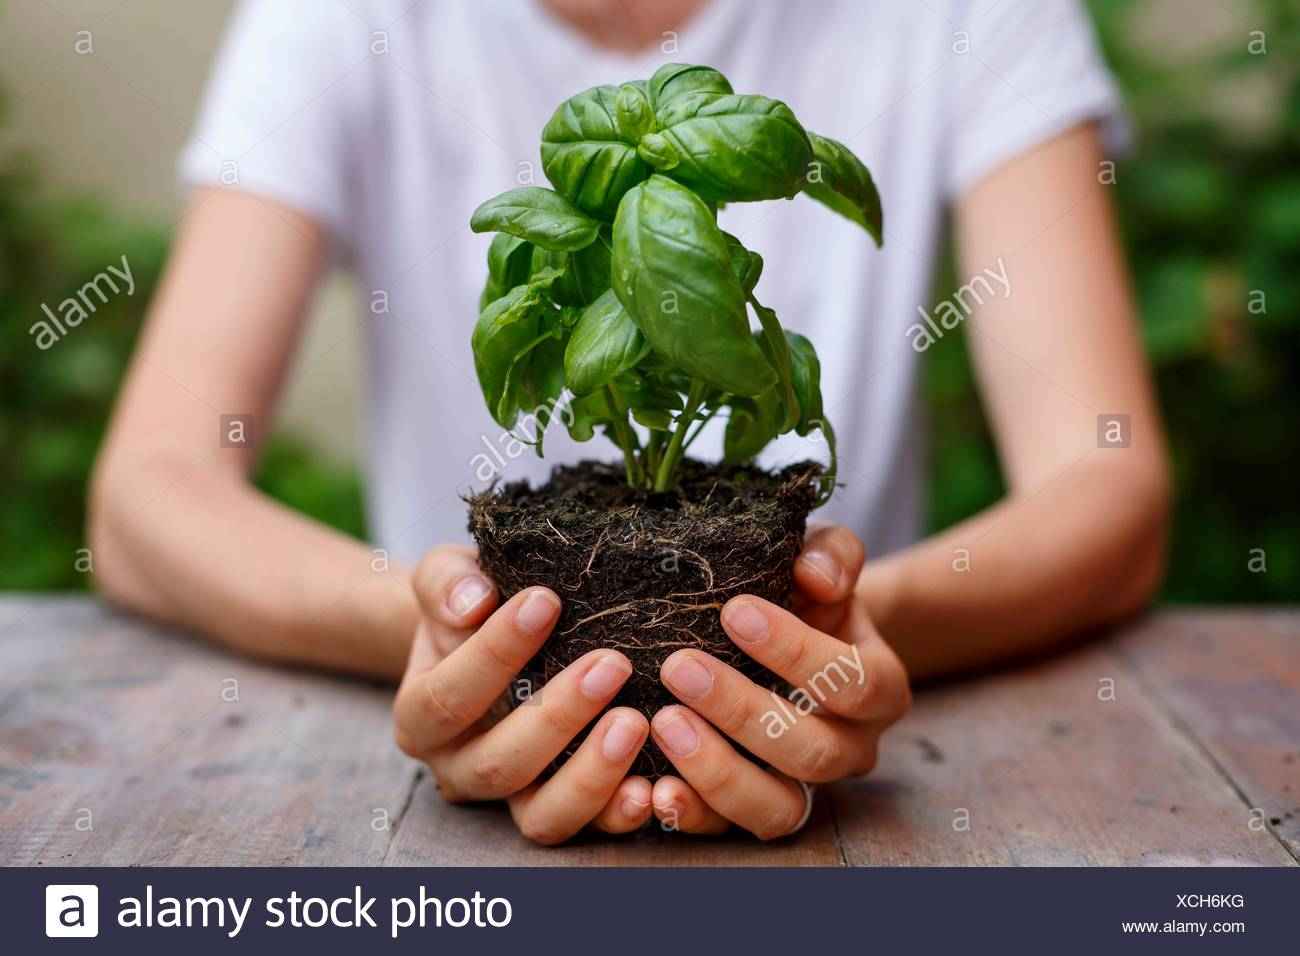 Cropped view of hands holding basil plant - Stock Image